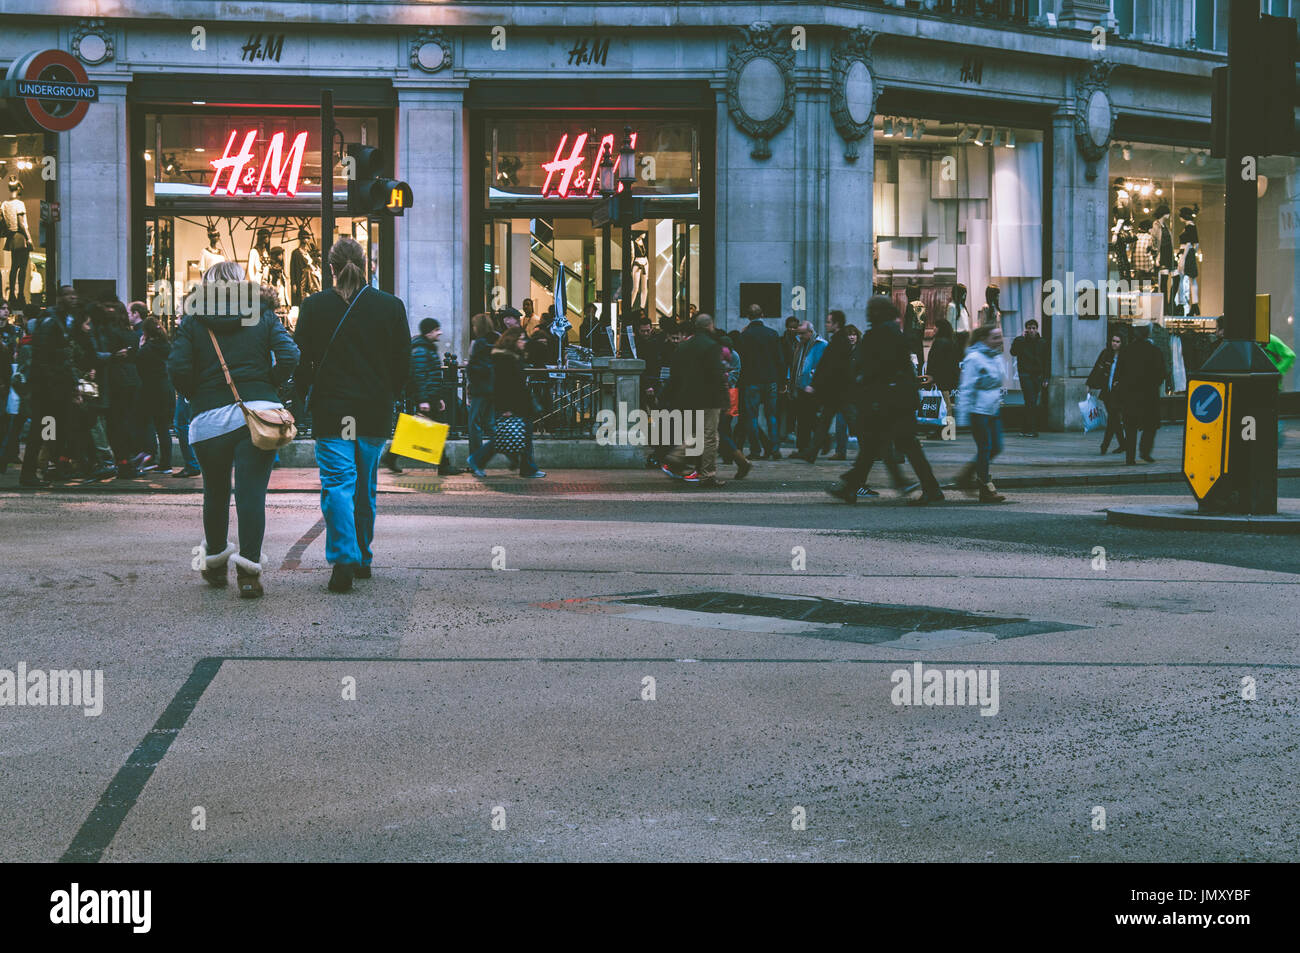 Shoppers Walk Past HM Shop Located On Oxford Street London Stock - Where is oxford located